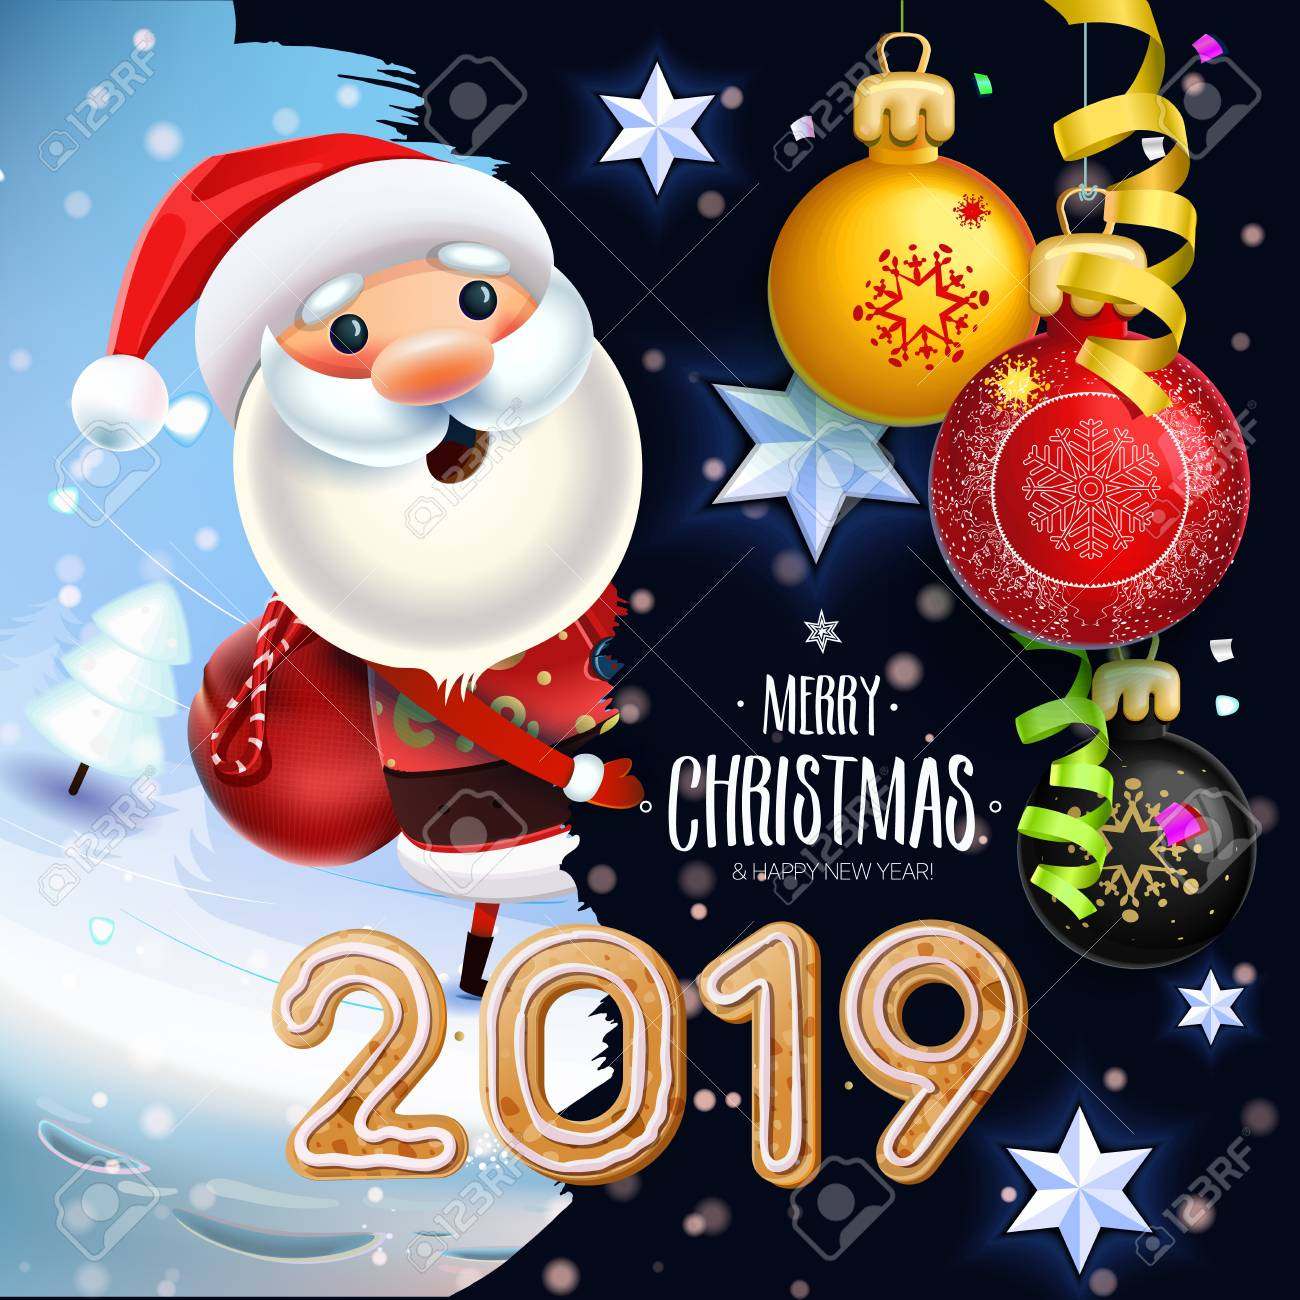 Christmas Toys.2019 New Year Merry Christmas Symbol Santa Claus On A Winter